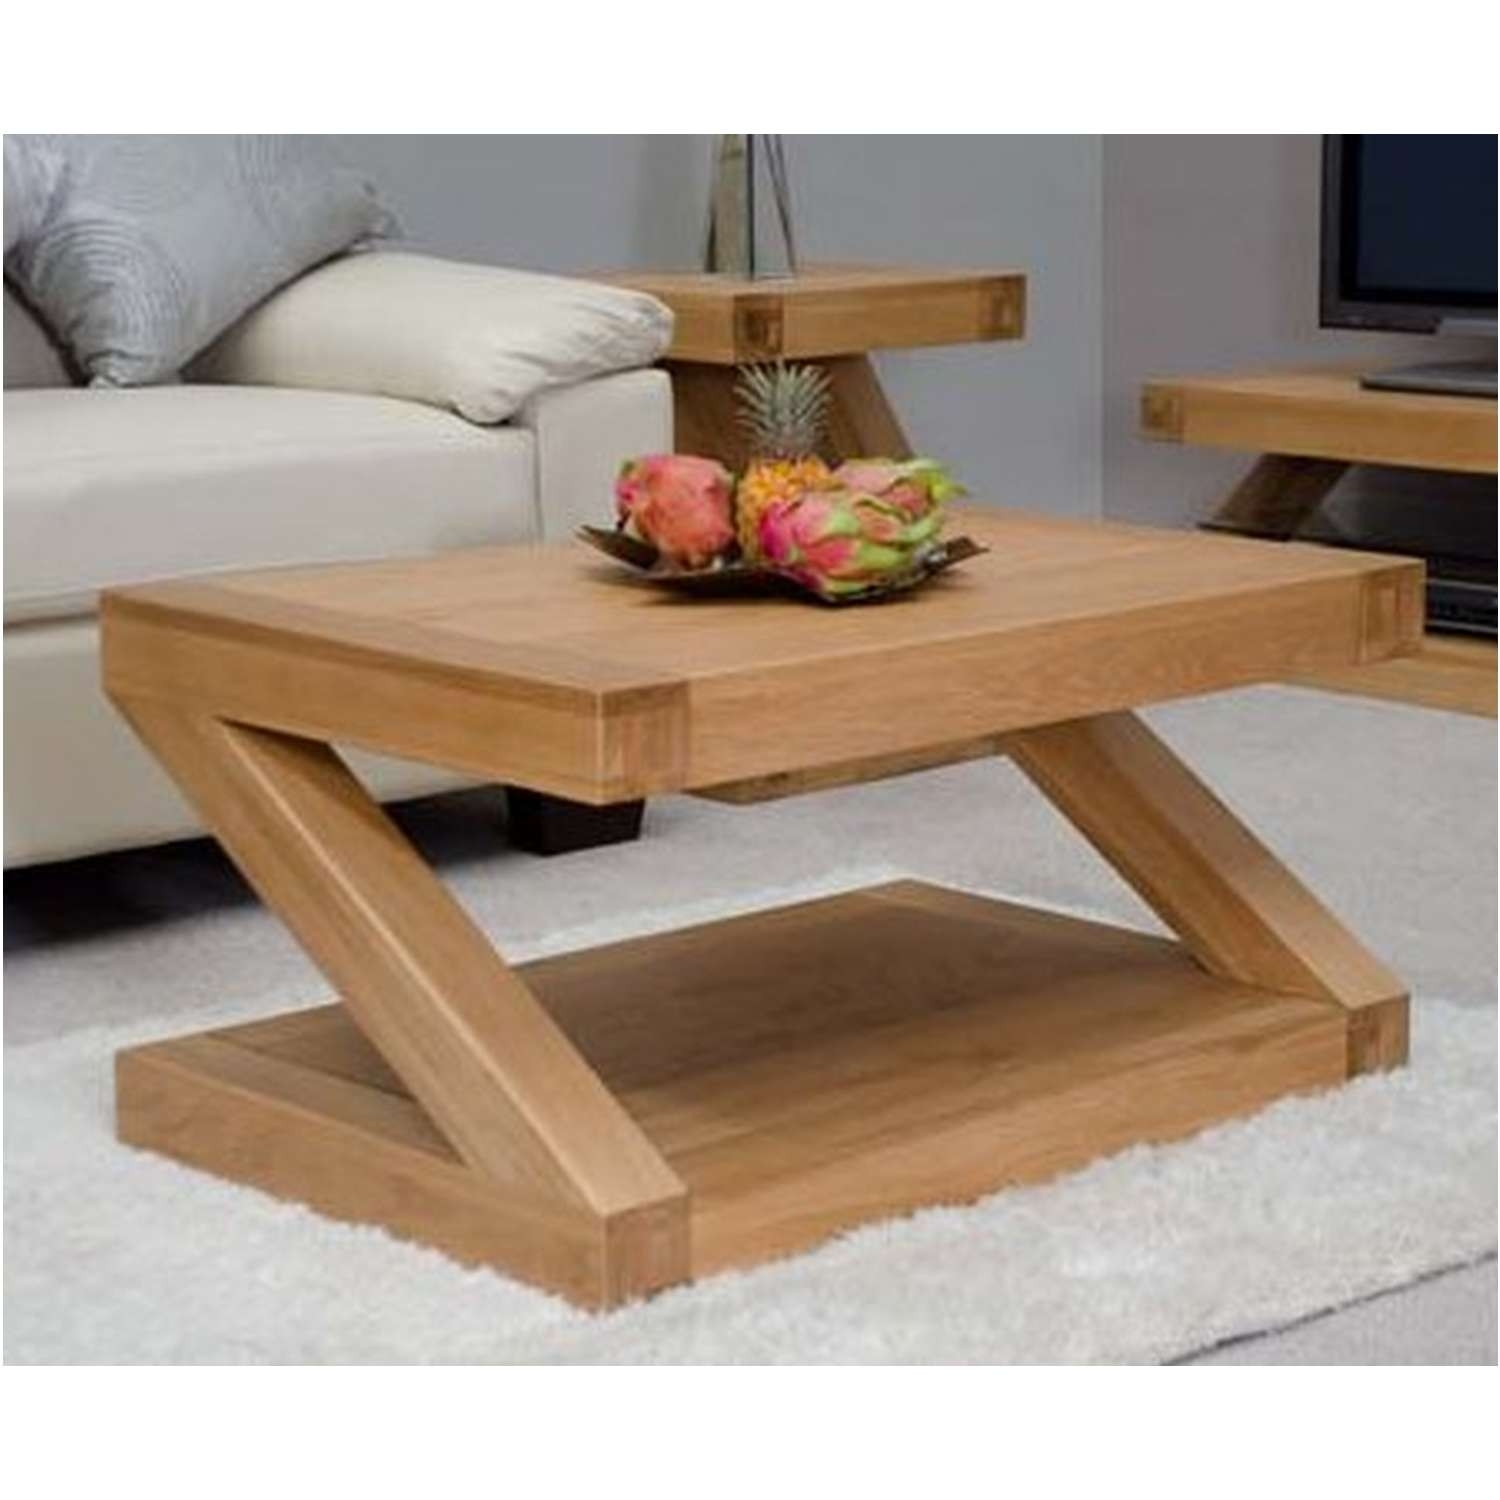 Solid Oak Coffee Tables For Popular Solid Oak Coffee Tables (View 9 of 20)